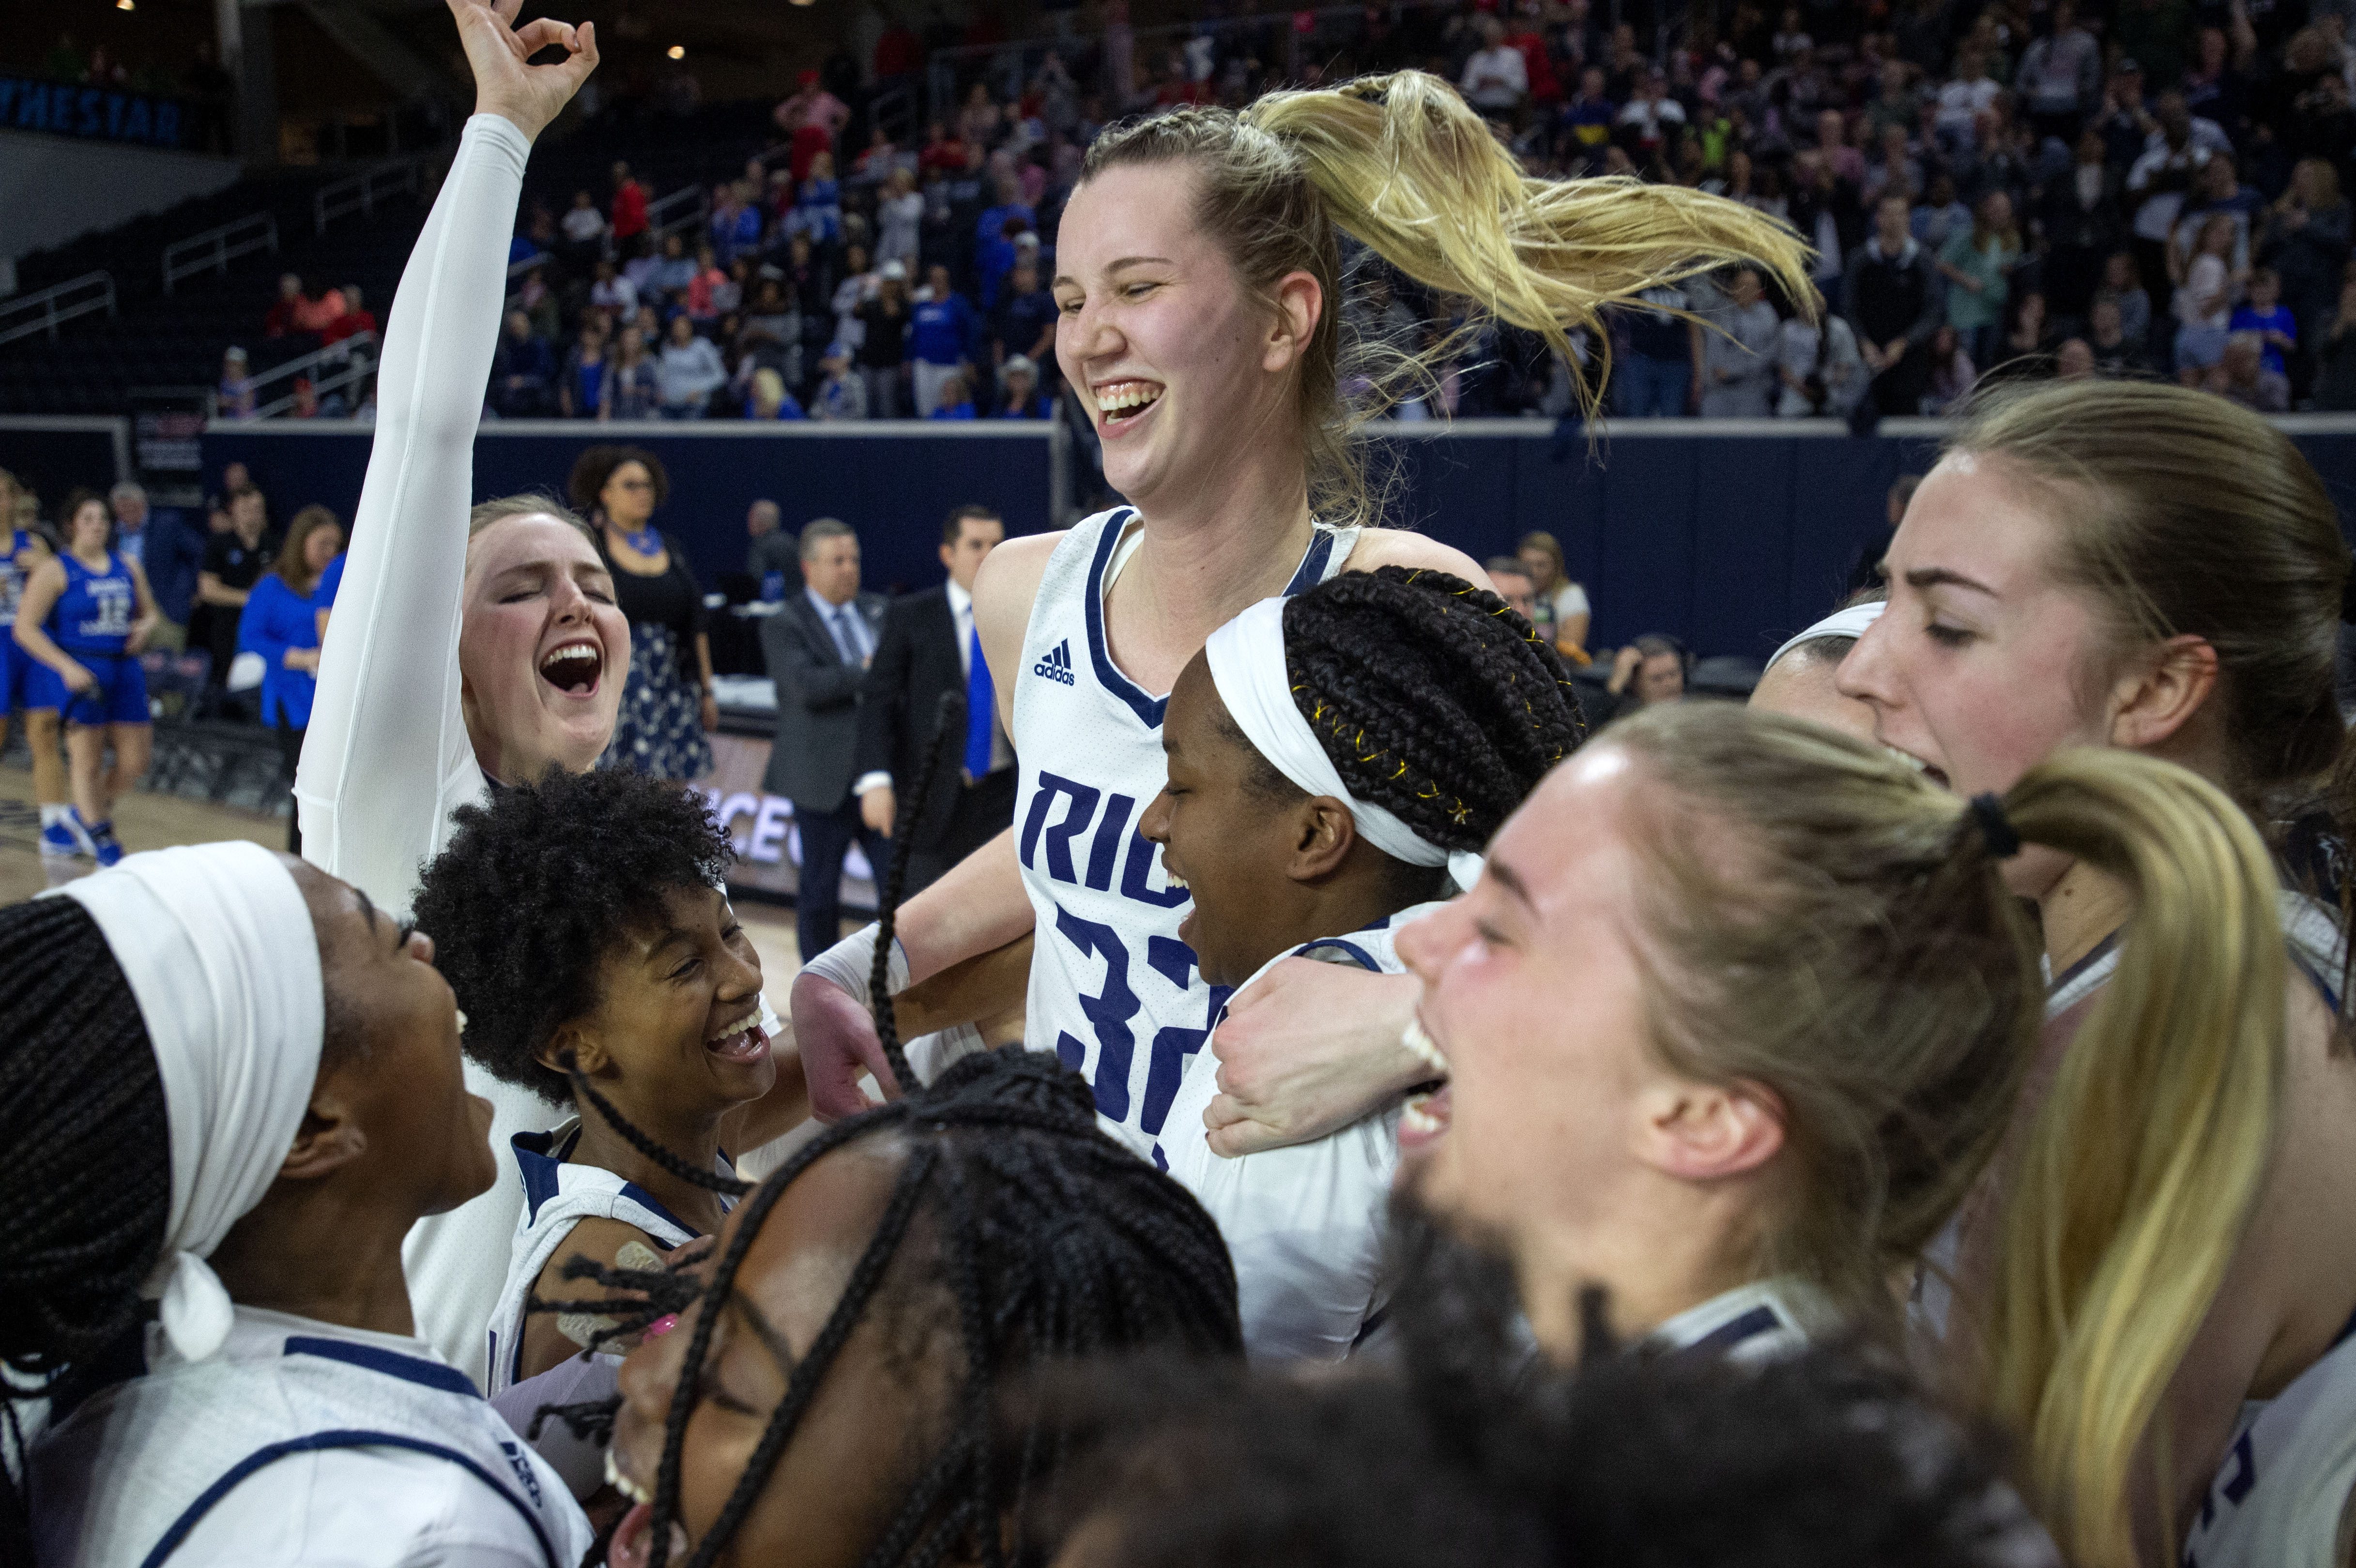 MVP Mulkey helps No. 24 Rice women top MTSU for C-USA title